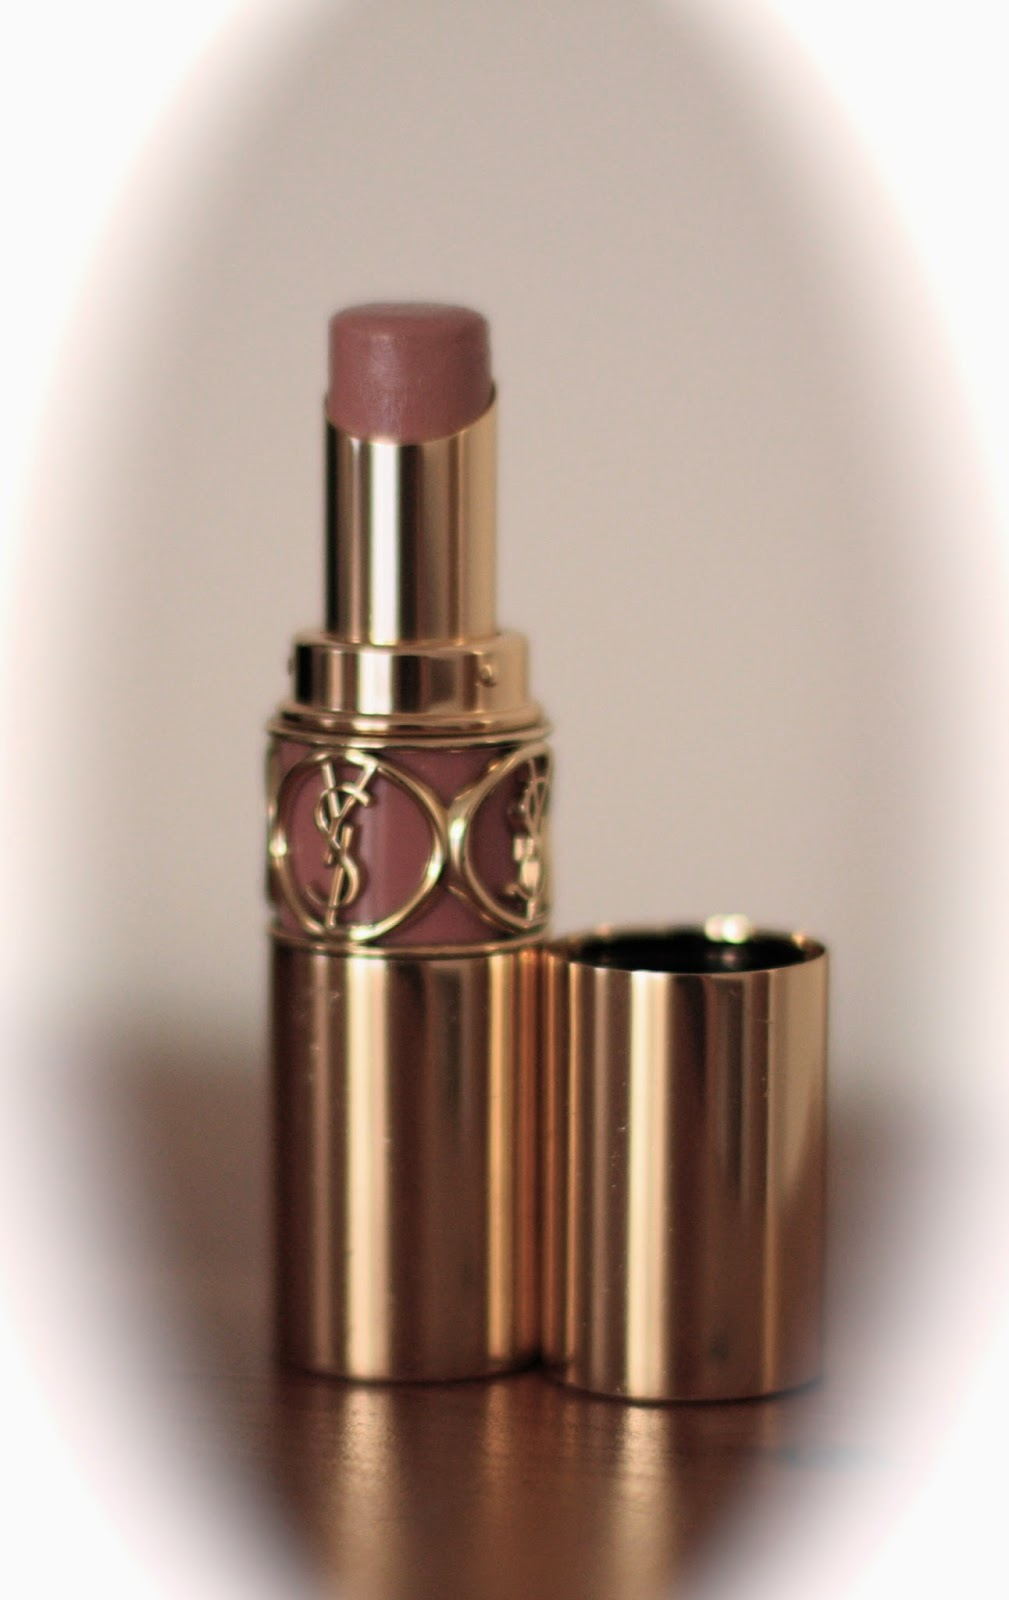 My Favourite Nude Lipsticks - YSL Rouge Volupte and L